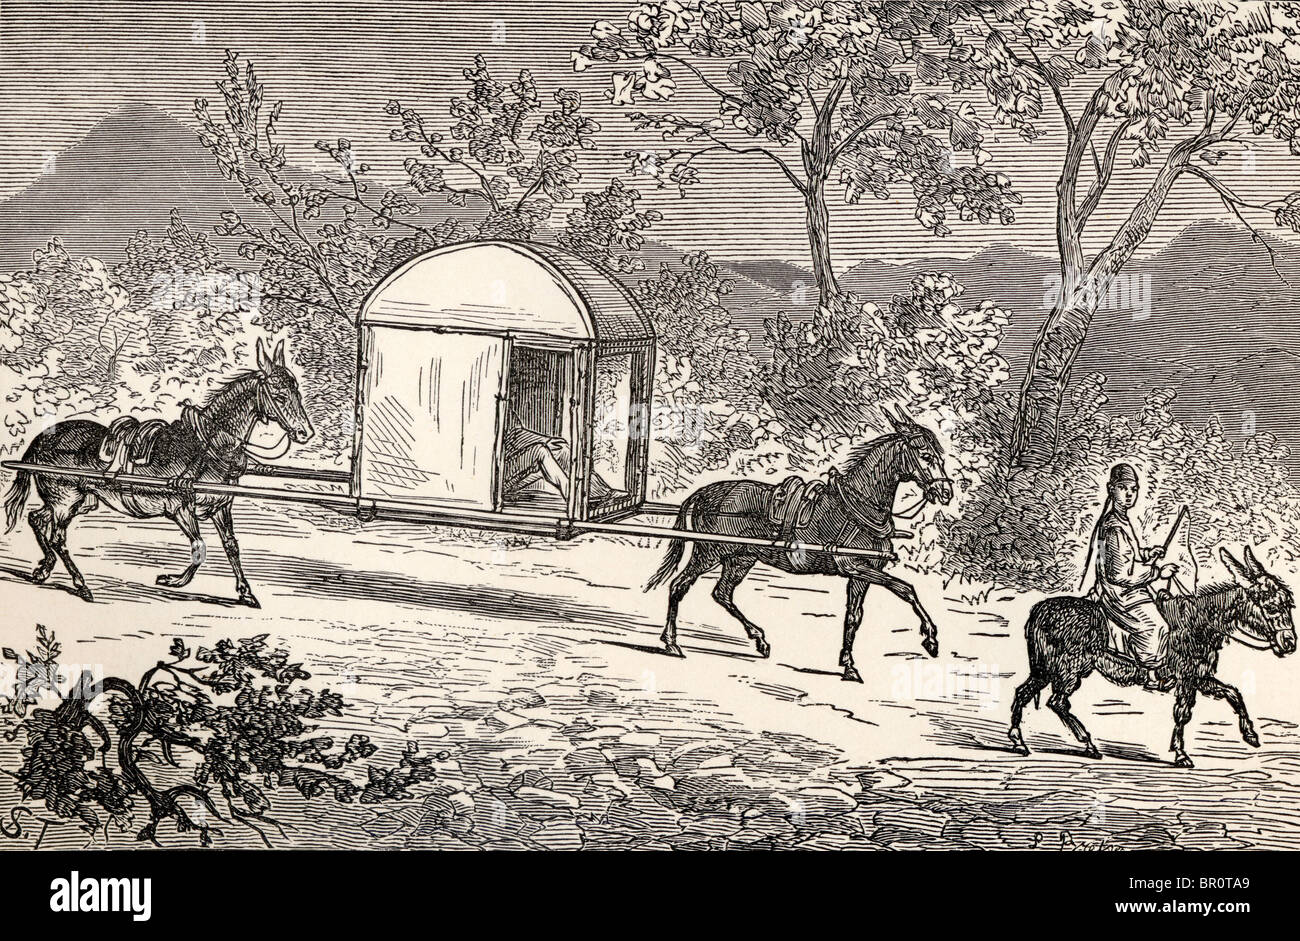 A Horse and Mule Palanquin used by the Chinese aristocracy in China in the 19th century. - Stock Image